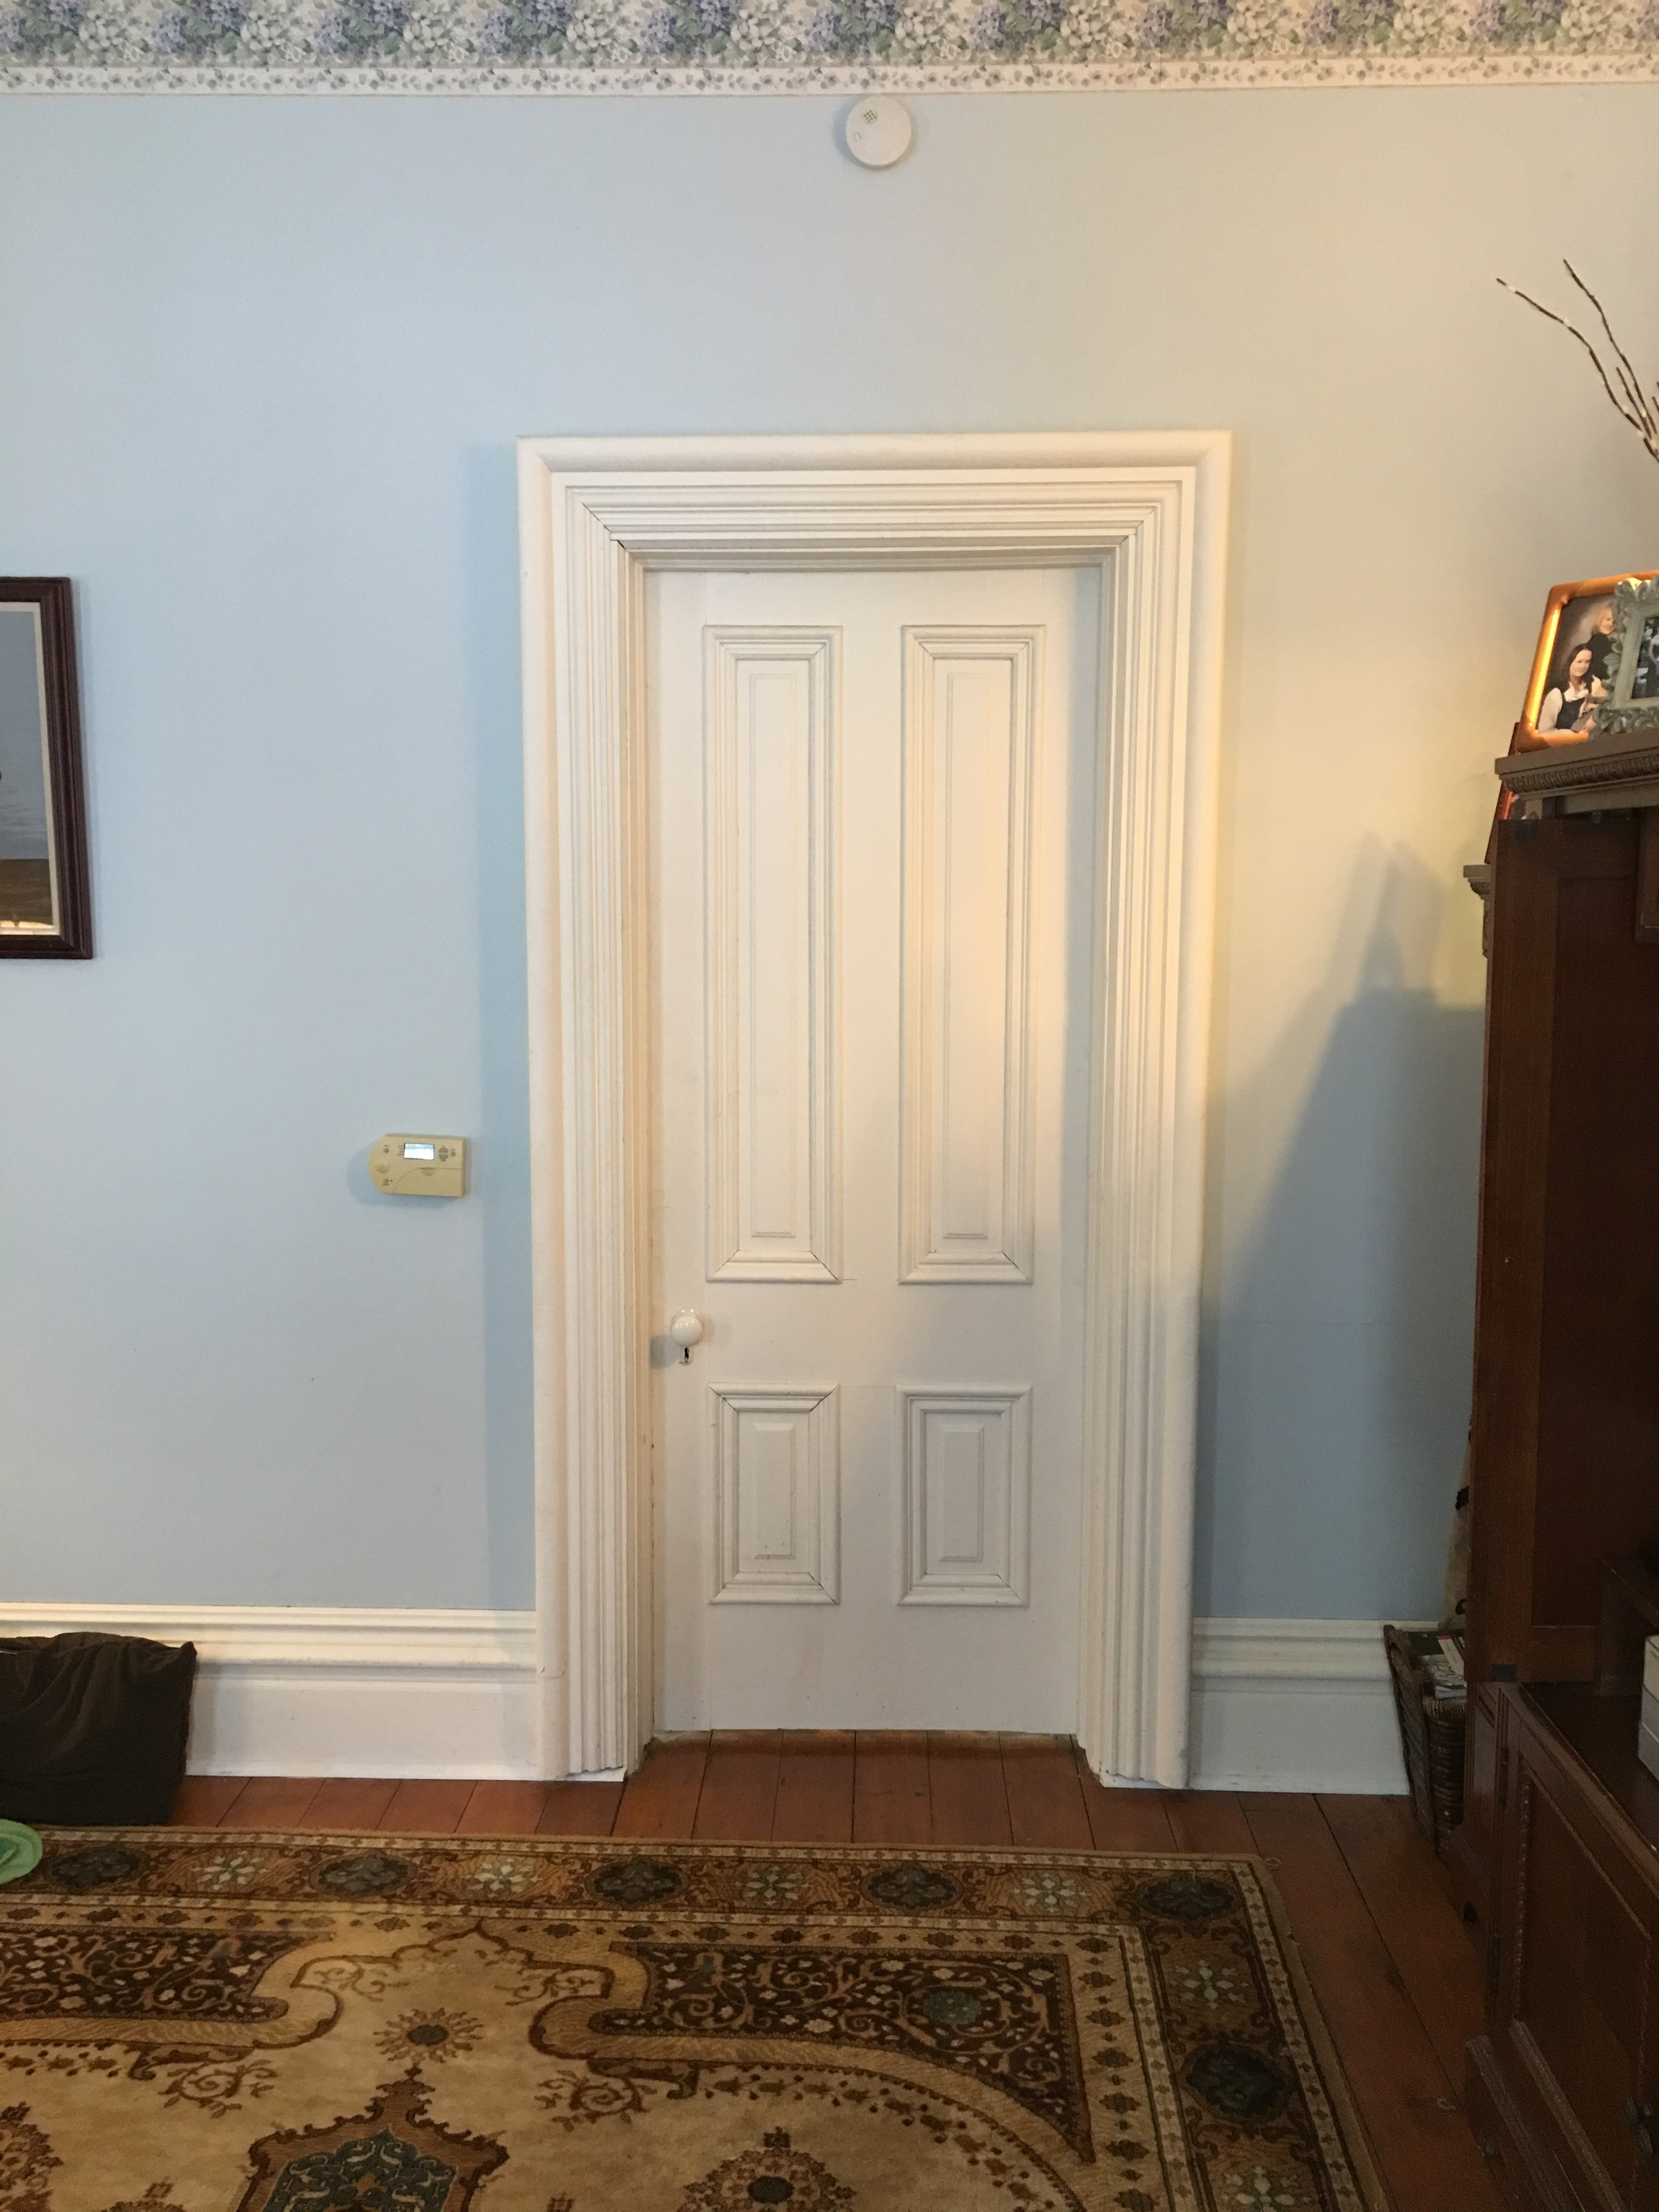 This is a door in the living room - note the way the surround builds out all the way to the outside edge...